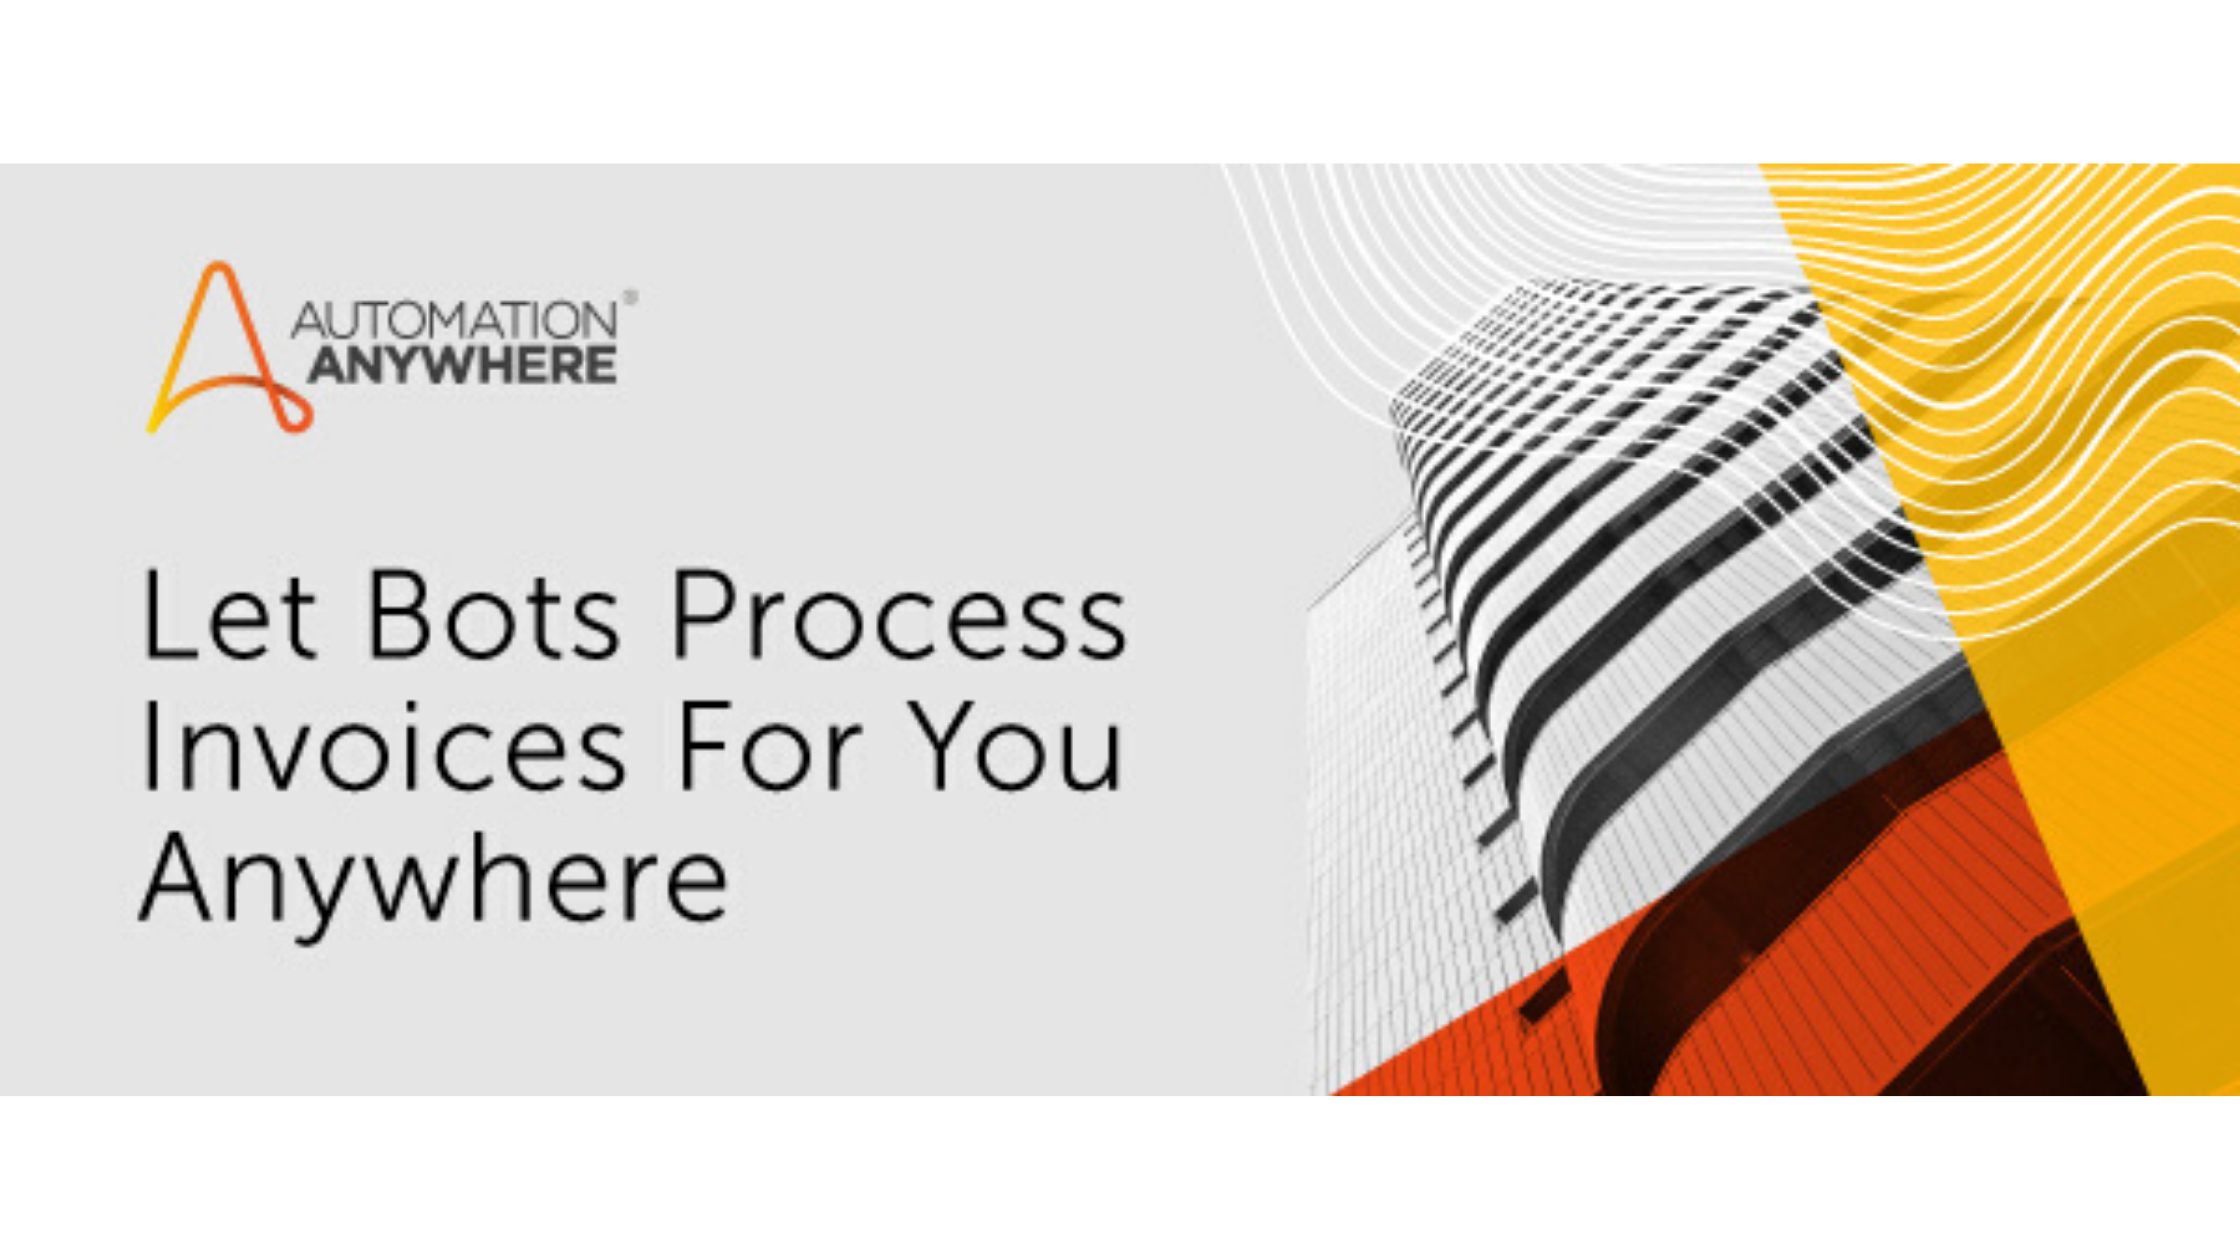 Process Your Invoices in Minutes with AI & RPA